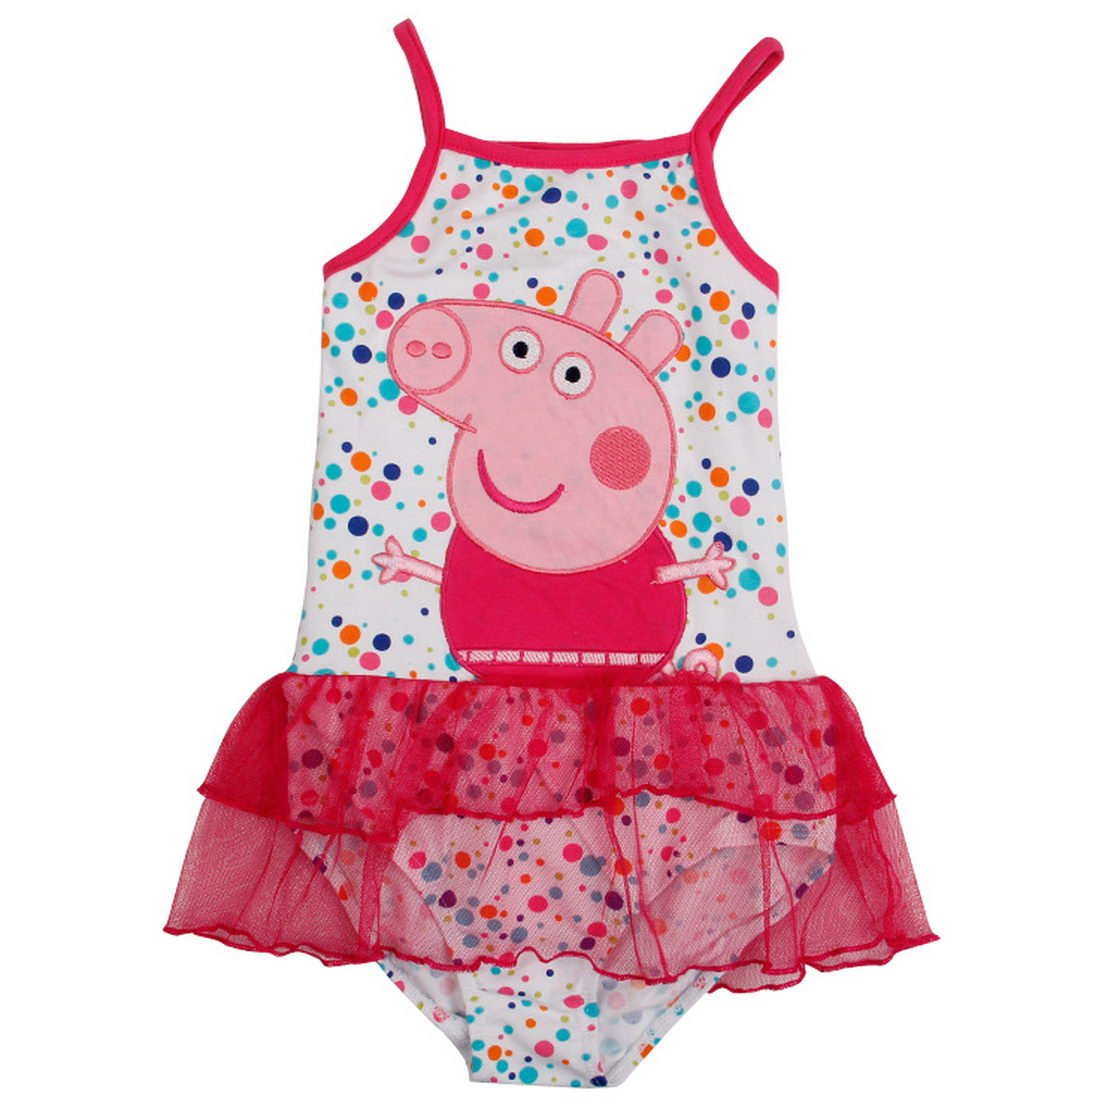 Peppa Pig Little Girls Dot Cotton Swimsuits 2-8Y